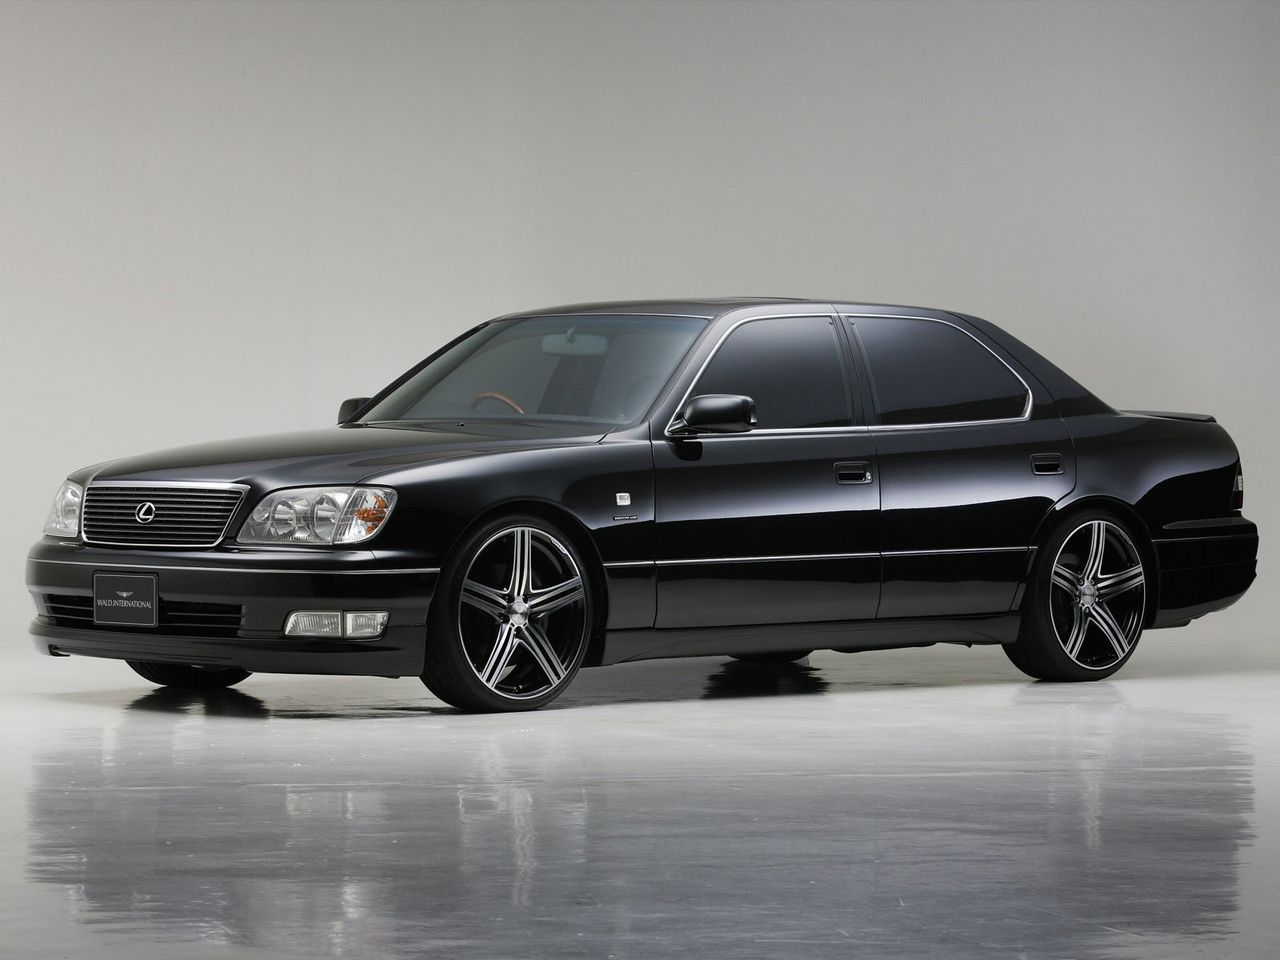 lexus ls400 1998 1999 2000 repair manual rh sellfy com Lexus 400 Series 1995 Lexus